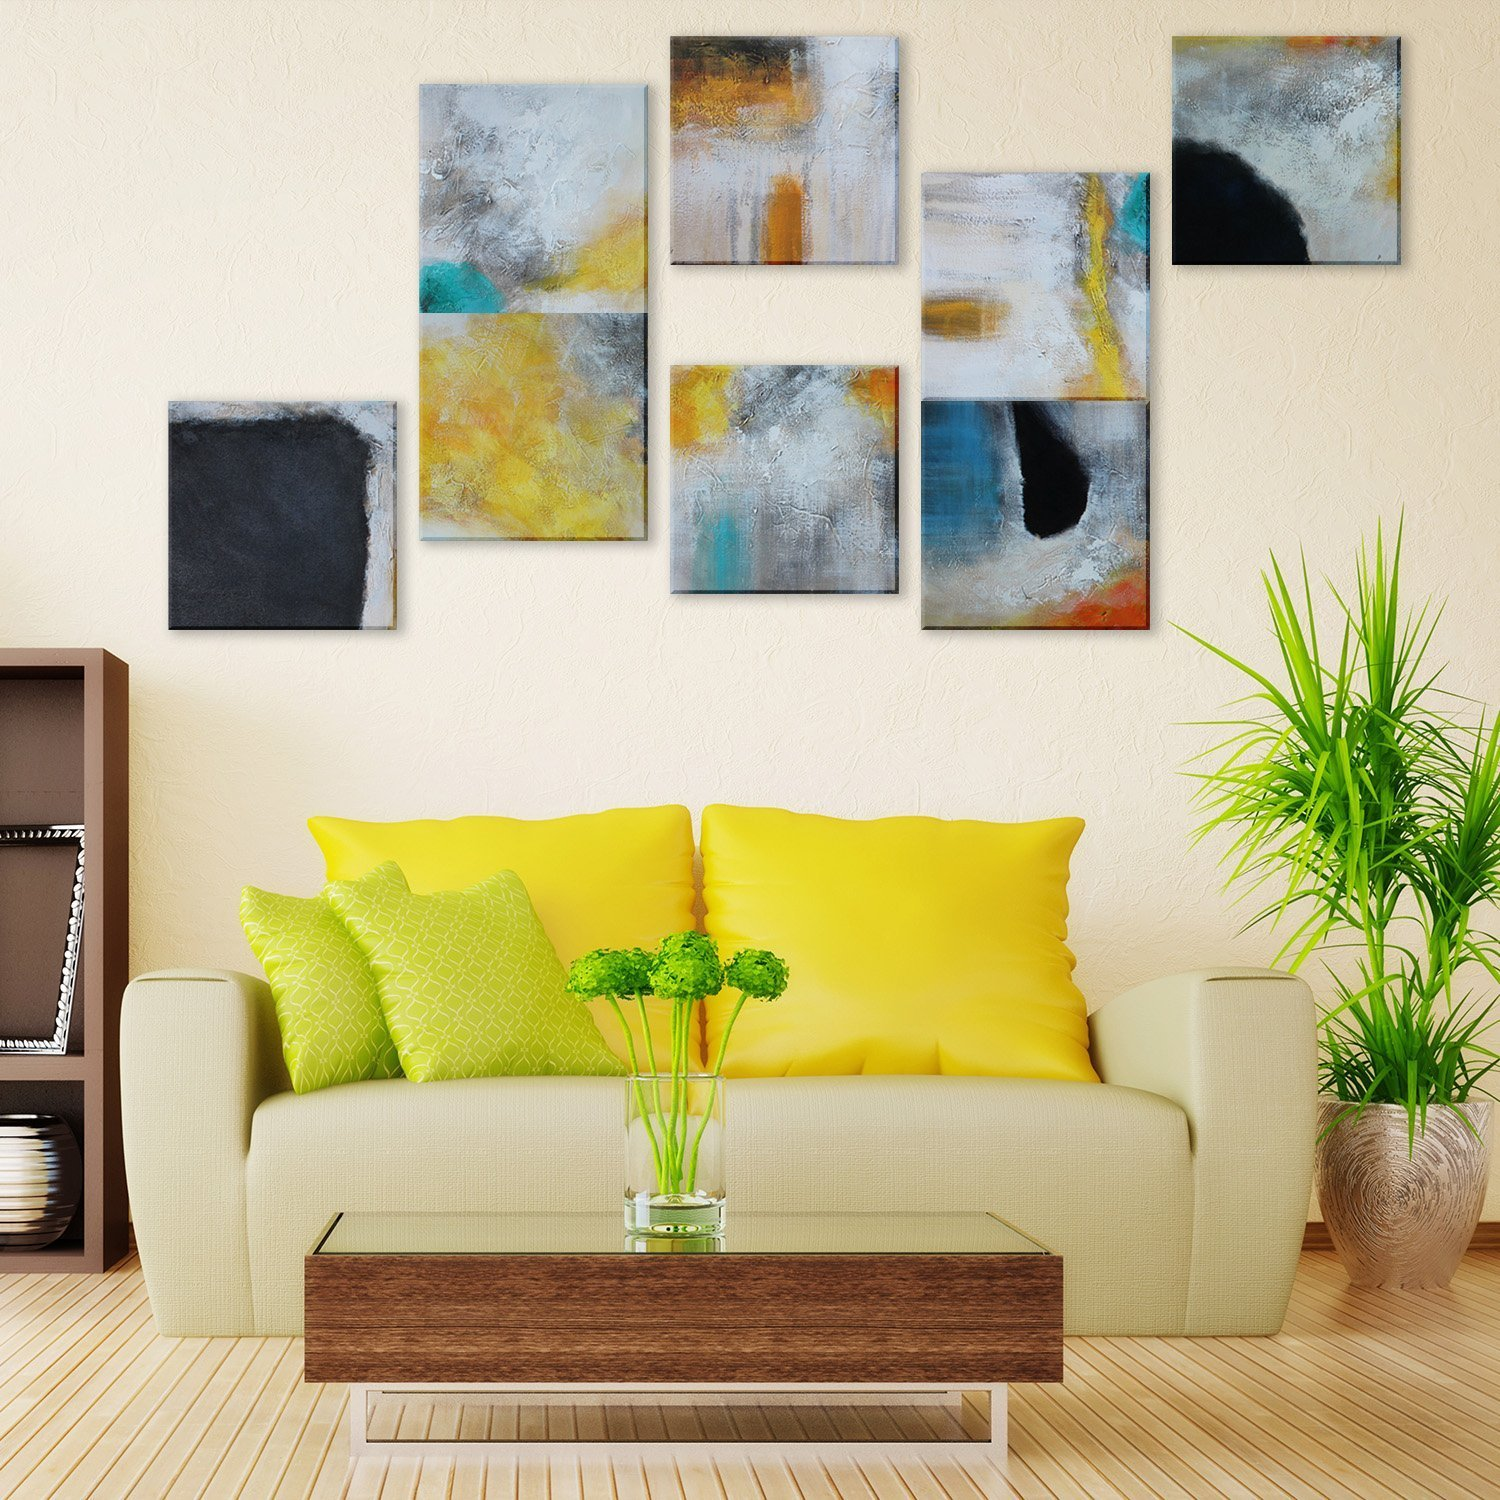 Amazon.com: IARTS Abstract Canvas Wall Art Acrylic Oil Paintings ...